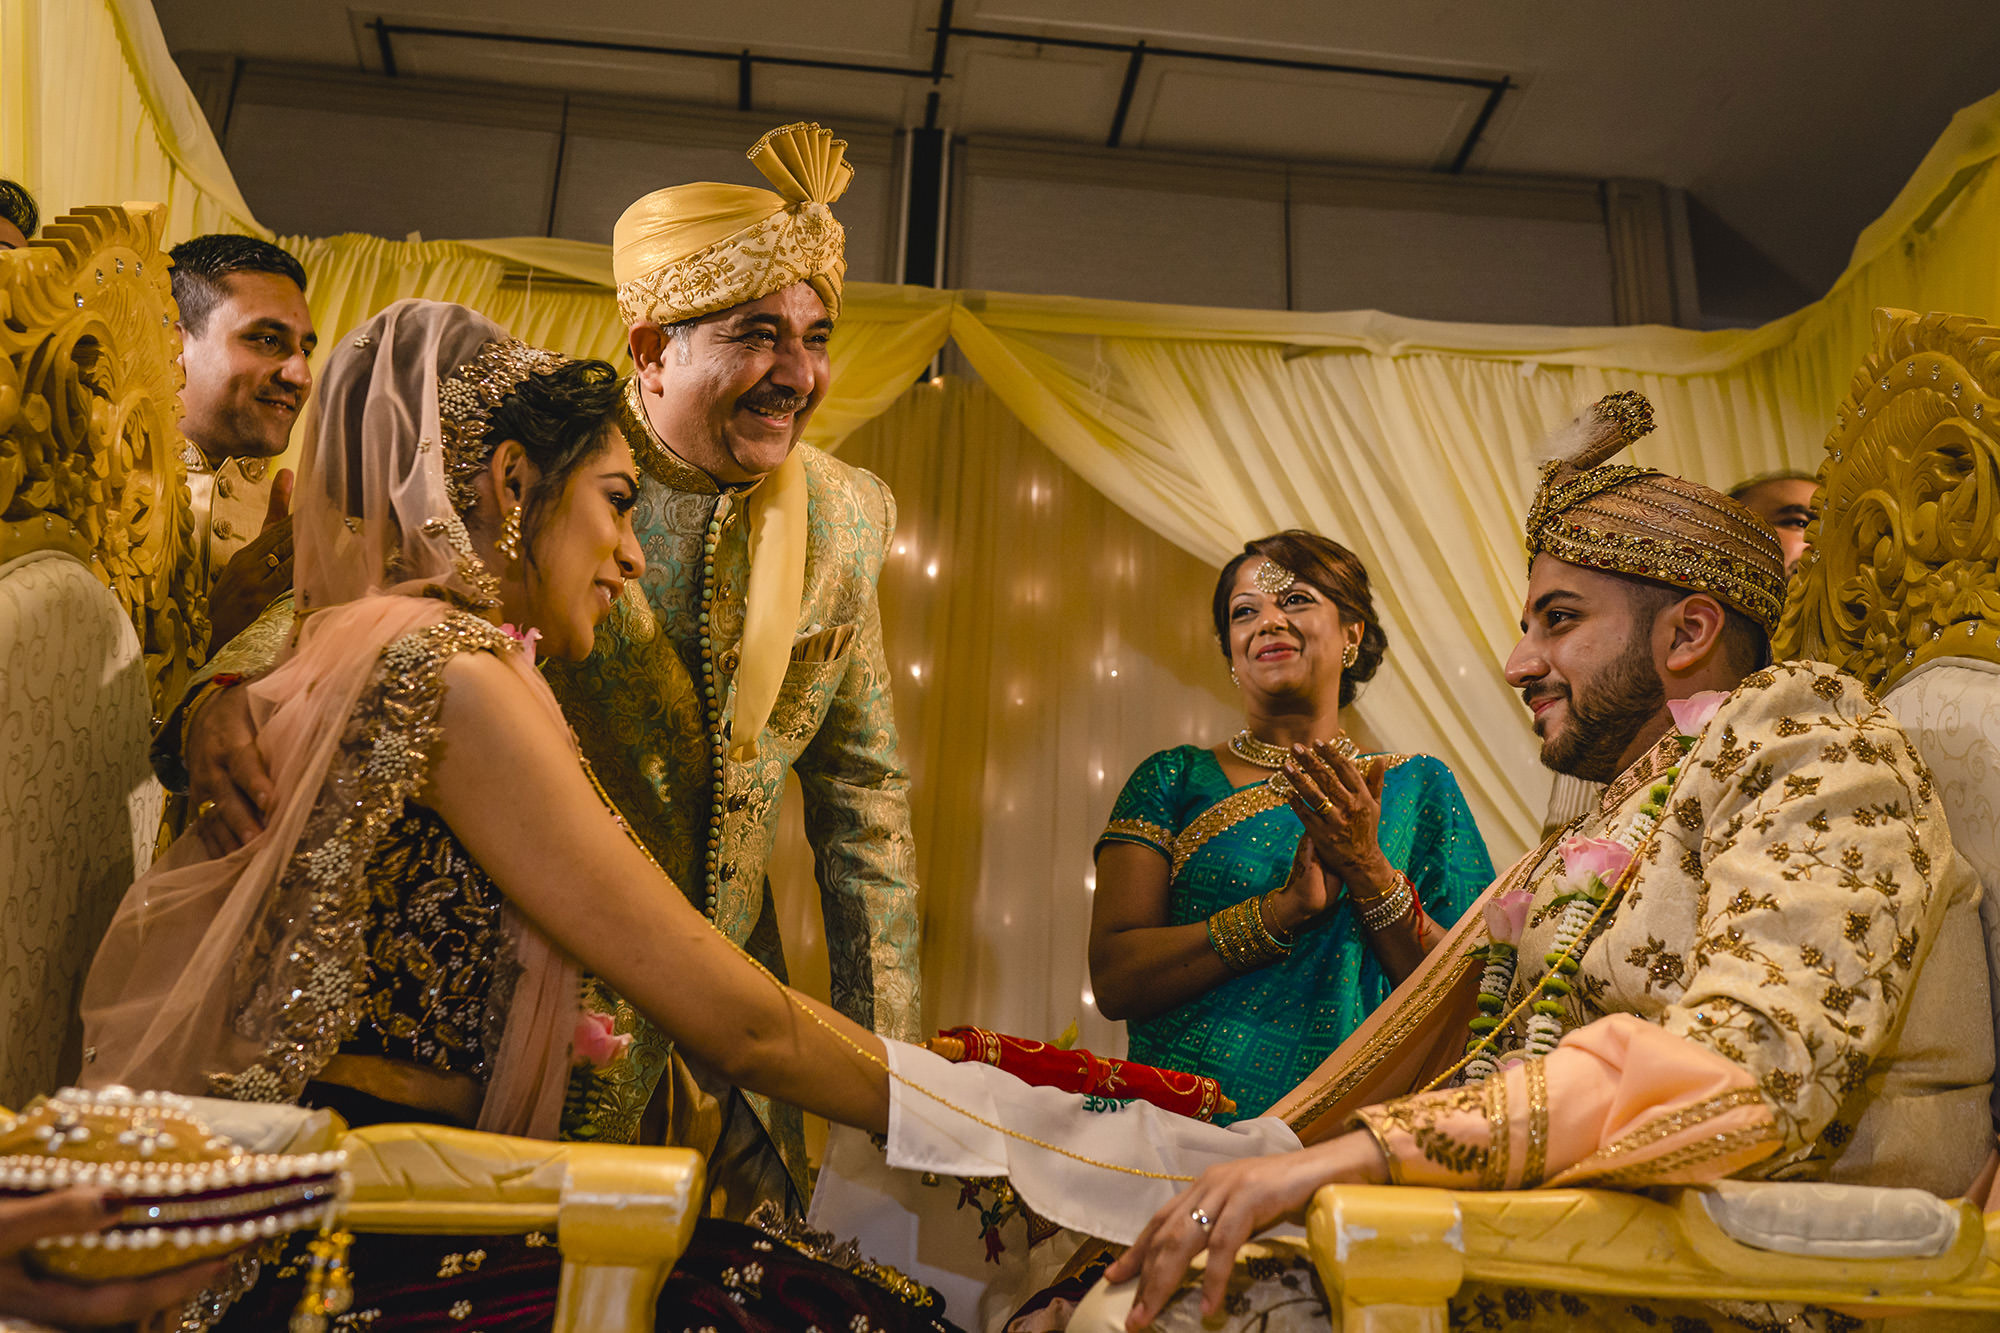 hindu wedding ceremony with the grooms parents